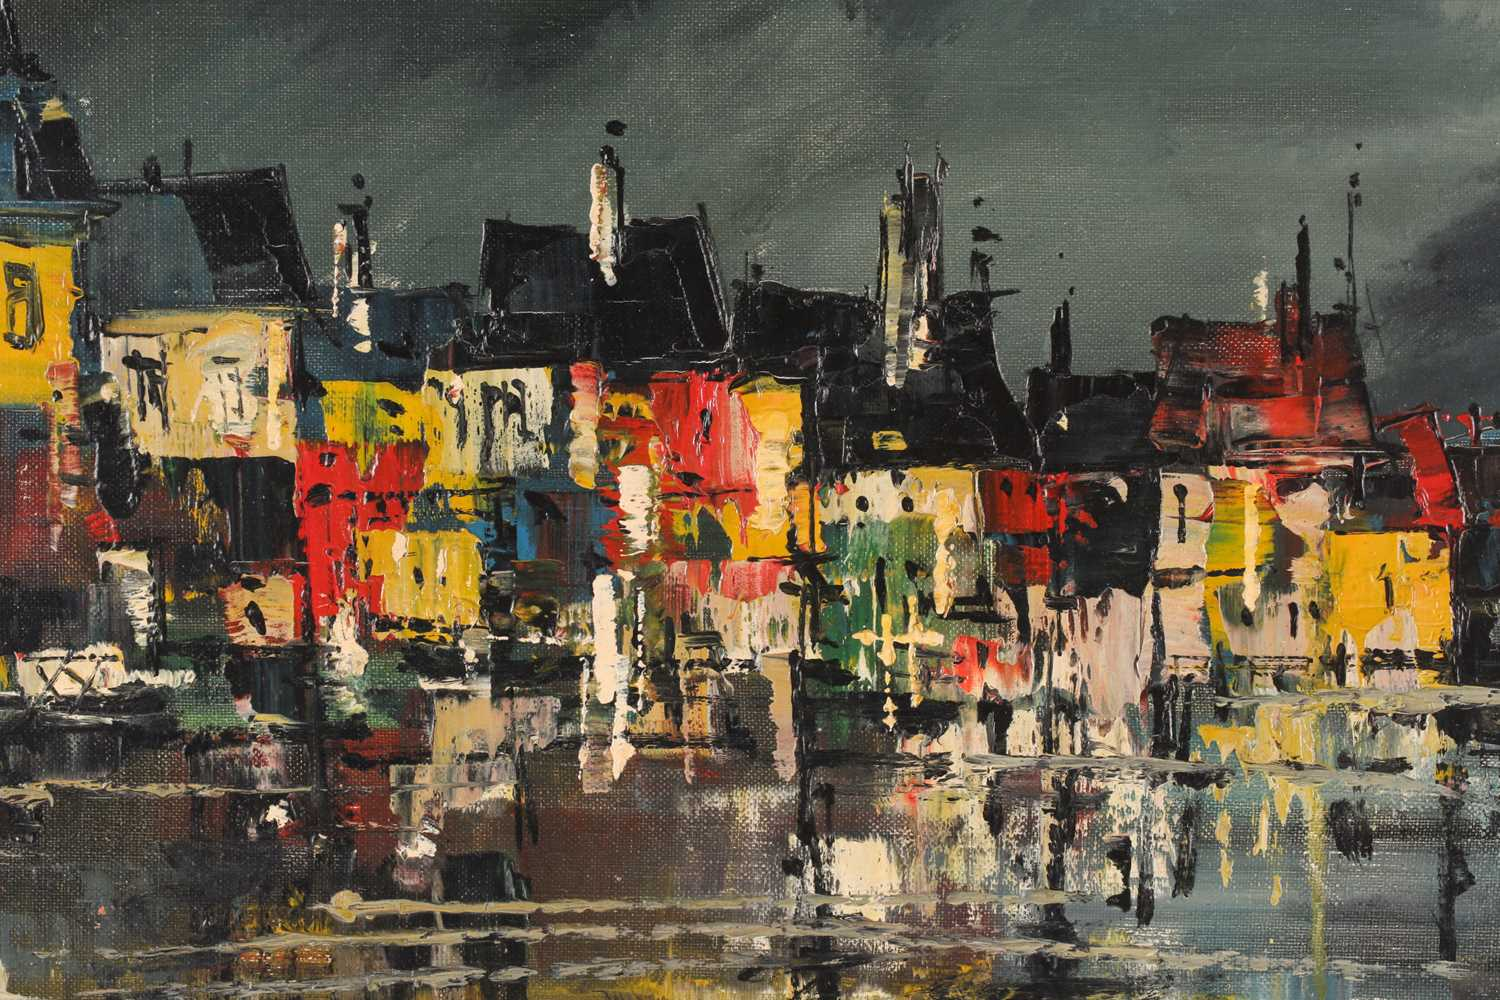 Biro, 20th century school, a townscape painted at night, oil on canvas, signed to lower left corner, - Image 5 of 6